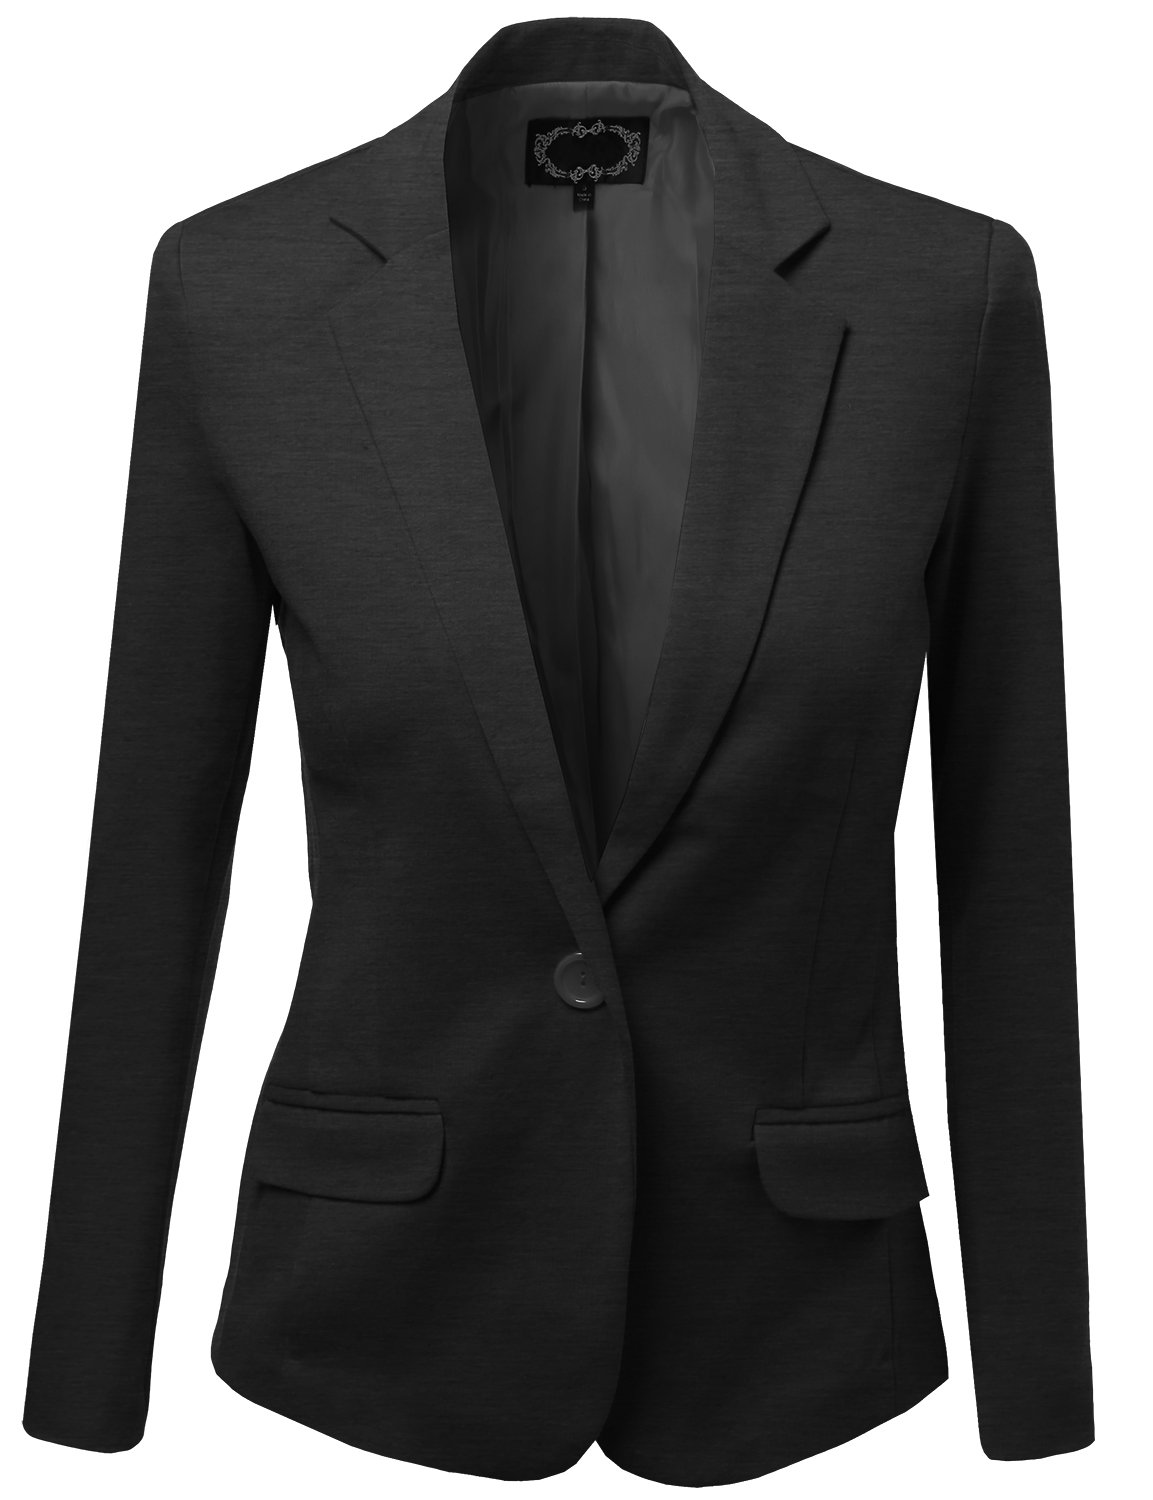 Basic Solid Slim Fit One Button Blazers Charcoal Size S by Awesome21